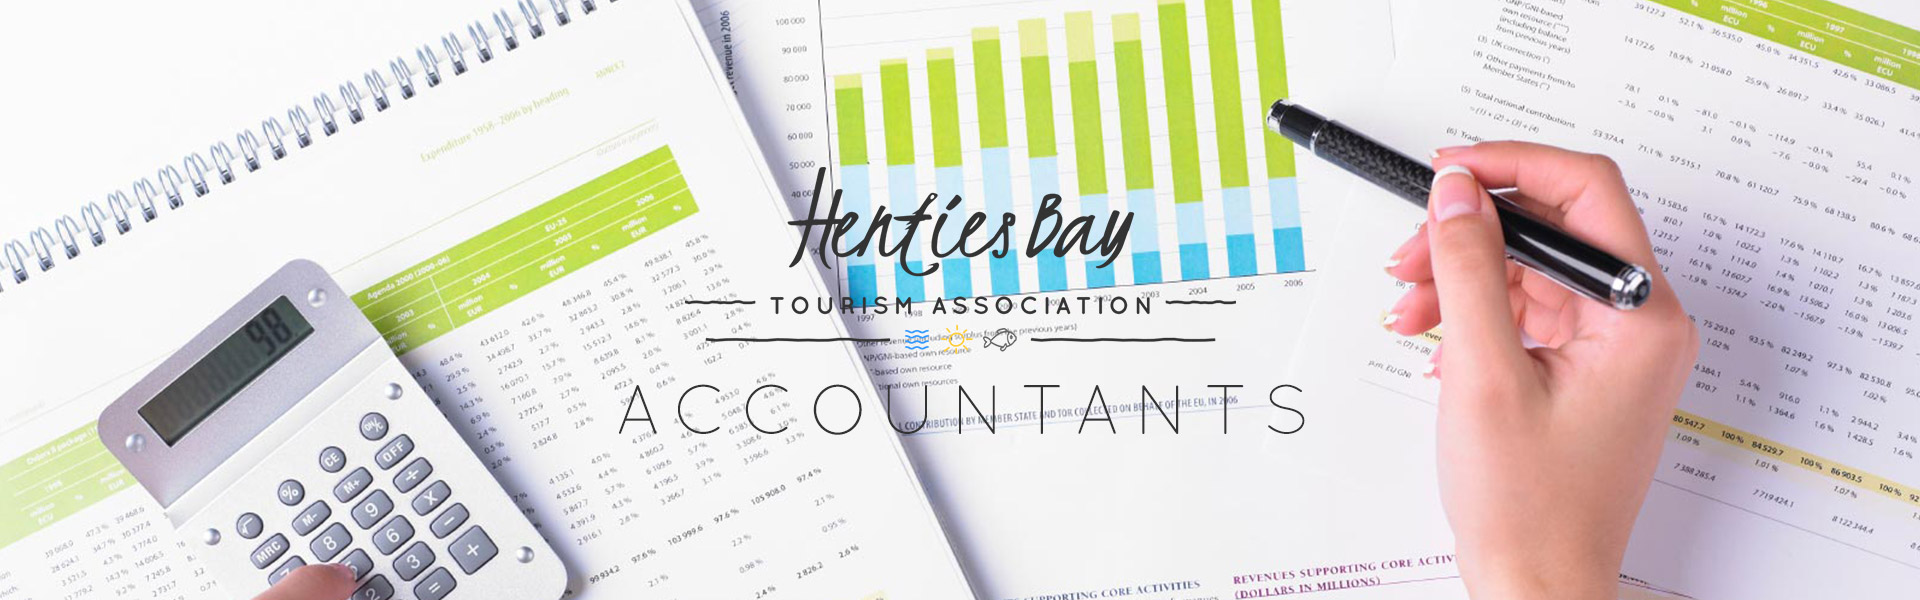 htbta_mainbanner_accountants